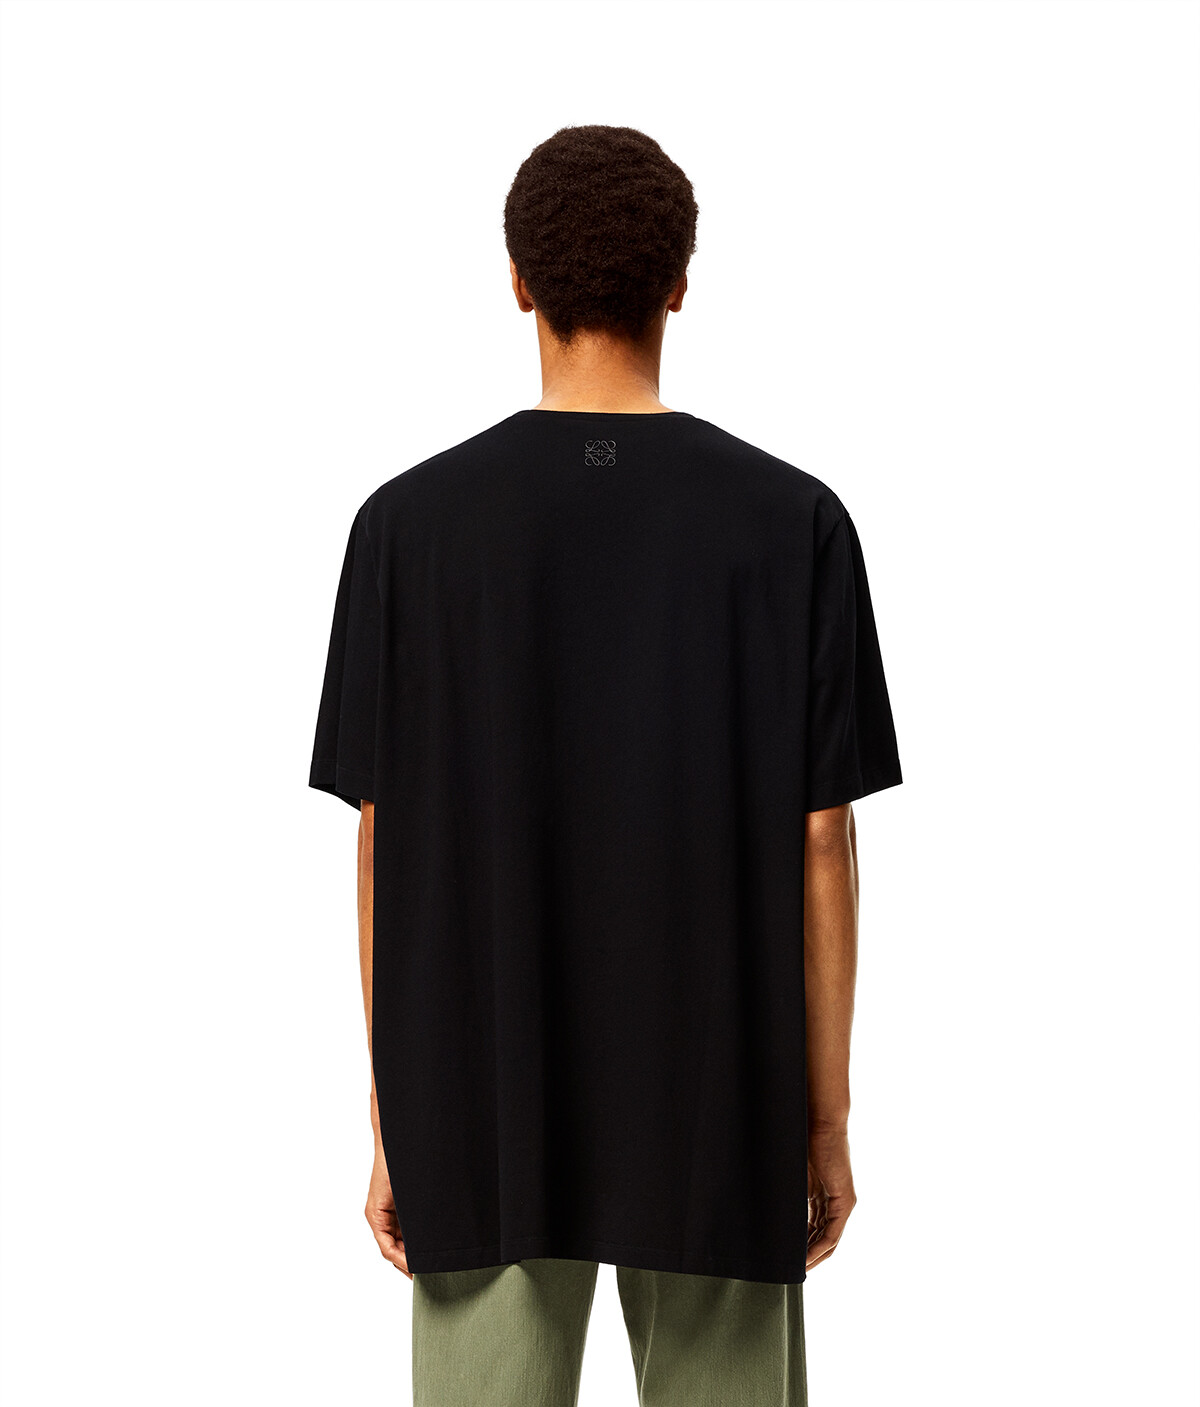 LOEWE Oversize T-Shirt In Mermaid Cotton Black front